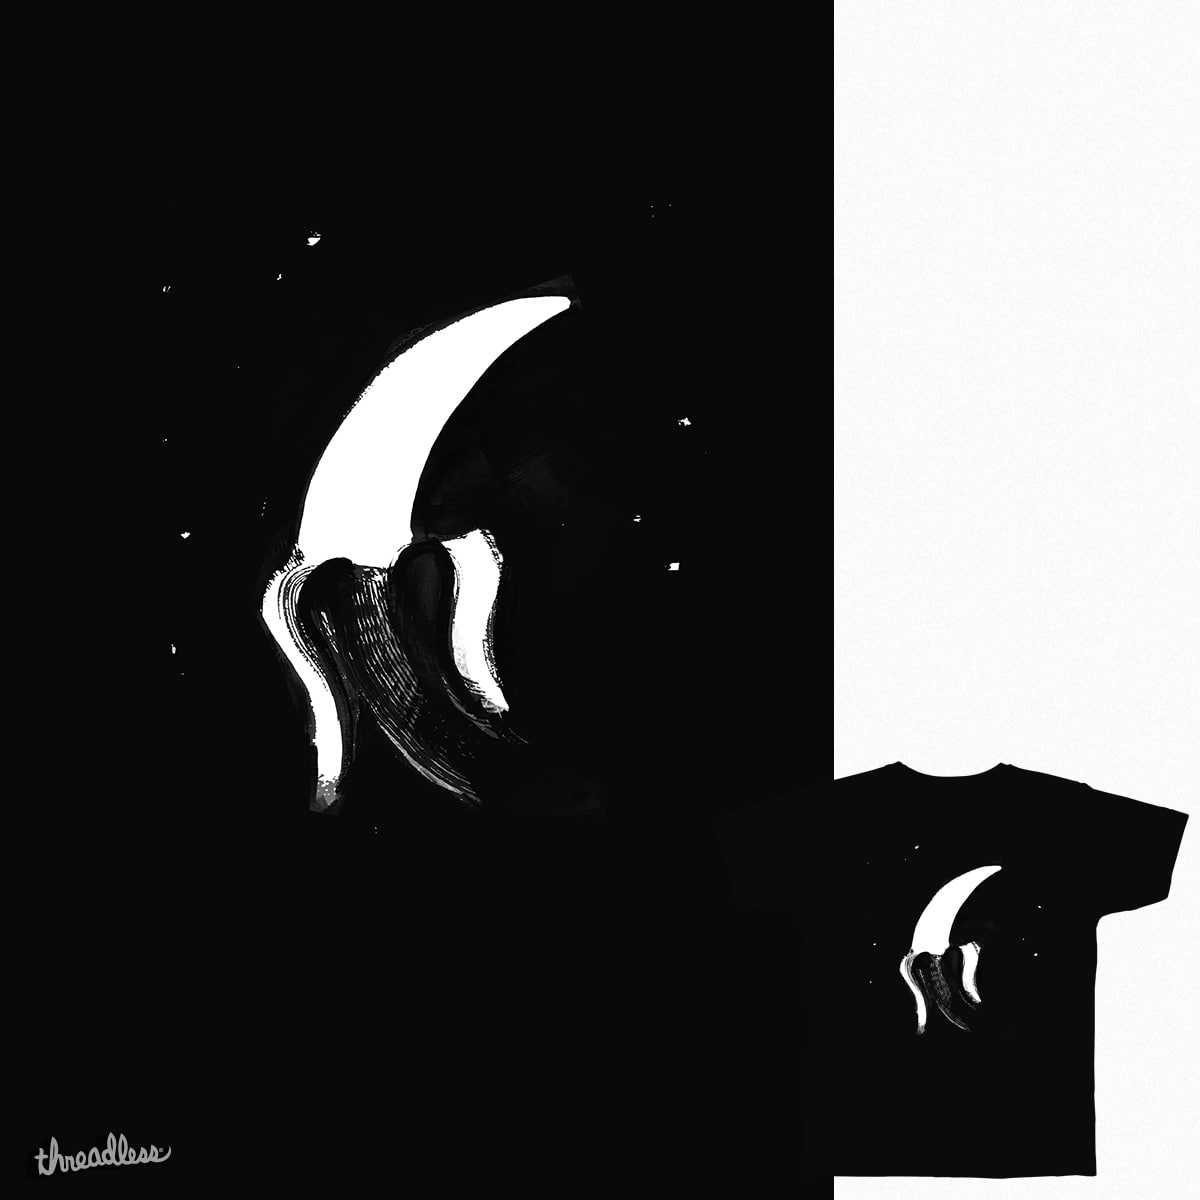 Banana. Moon. by Vmorelli on Threadless